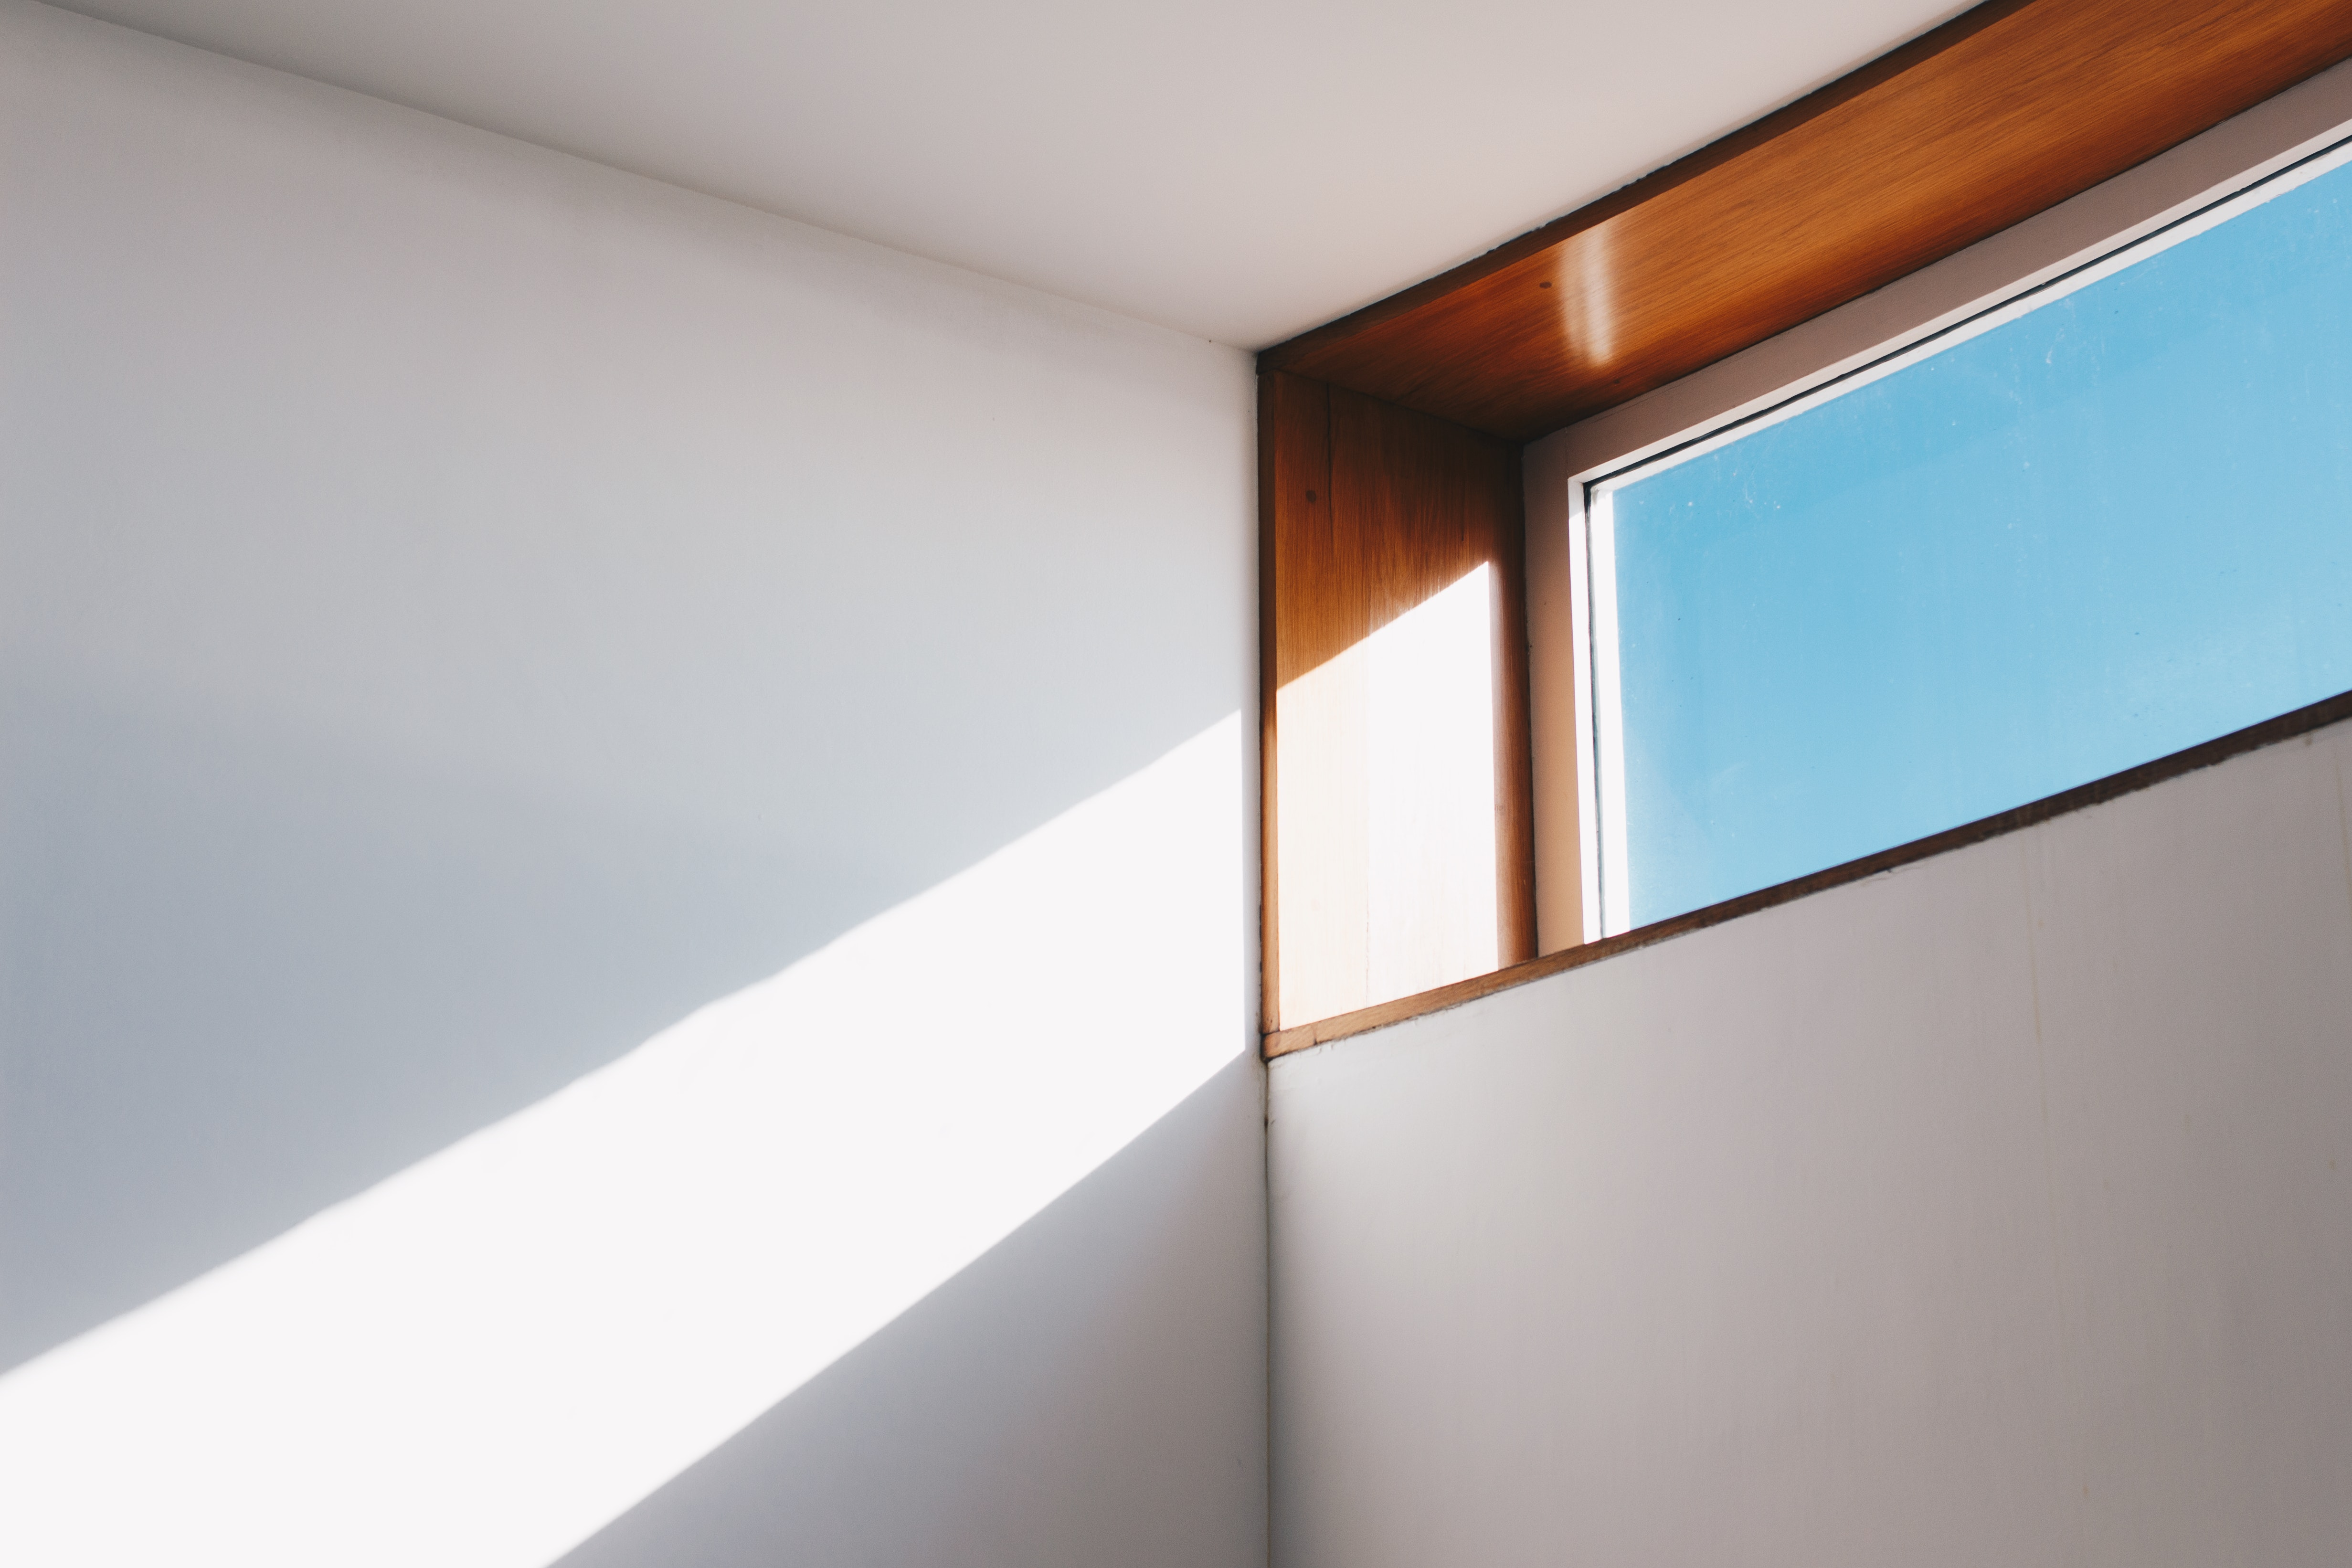 6 Benefits of Window Film for Homes & Commercial Properties